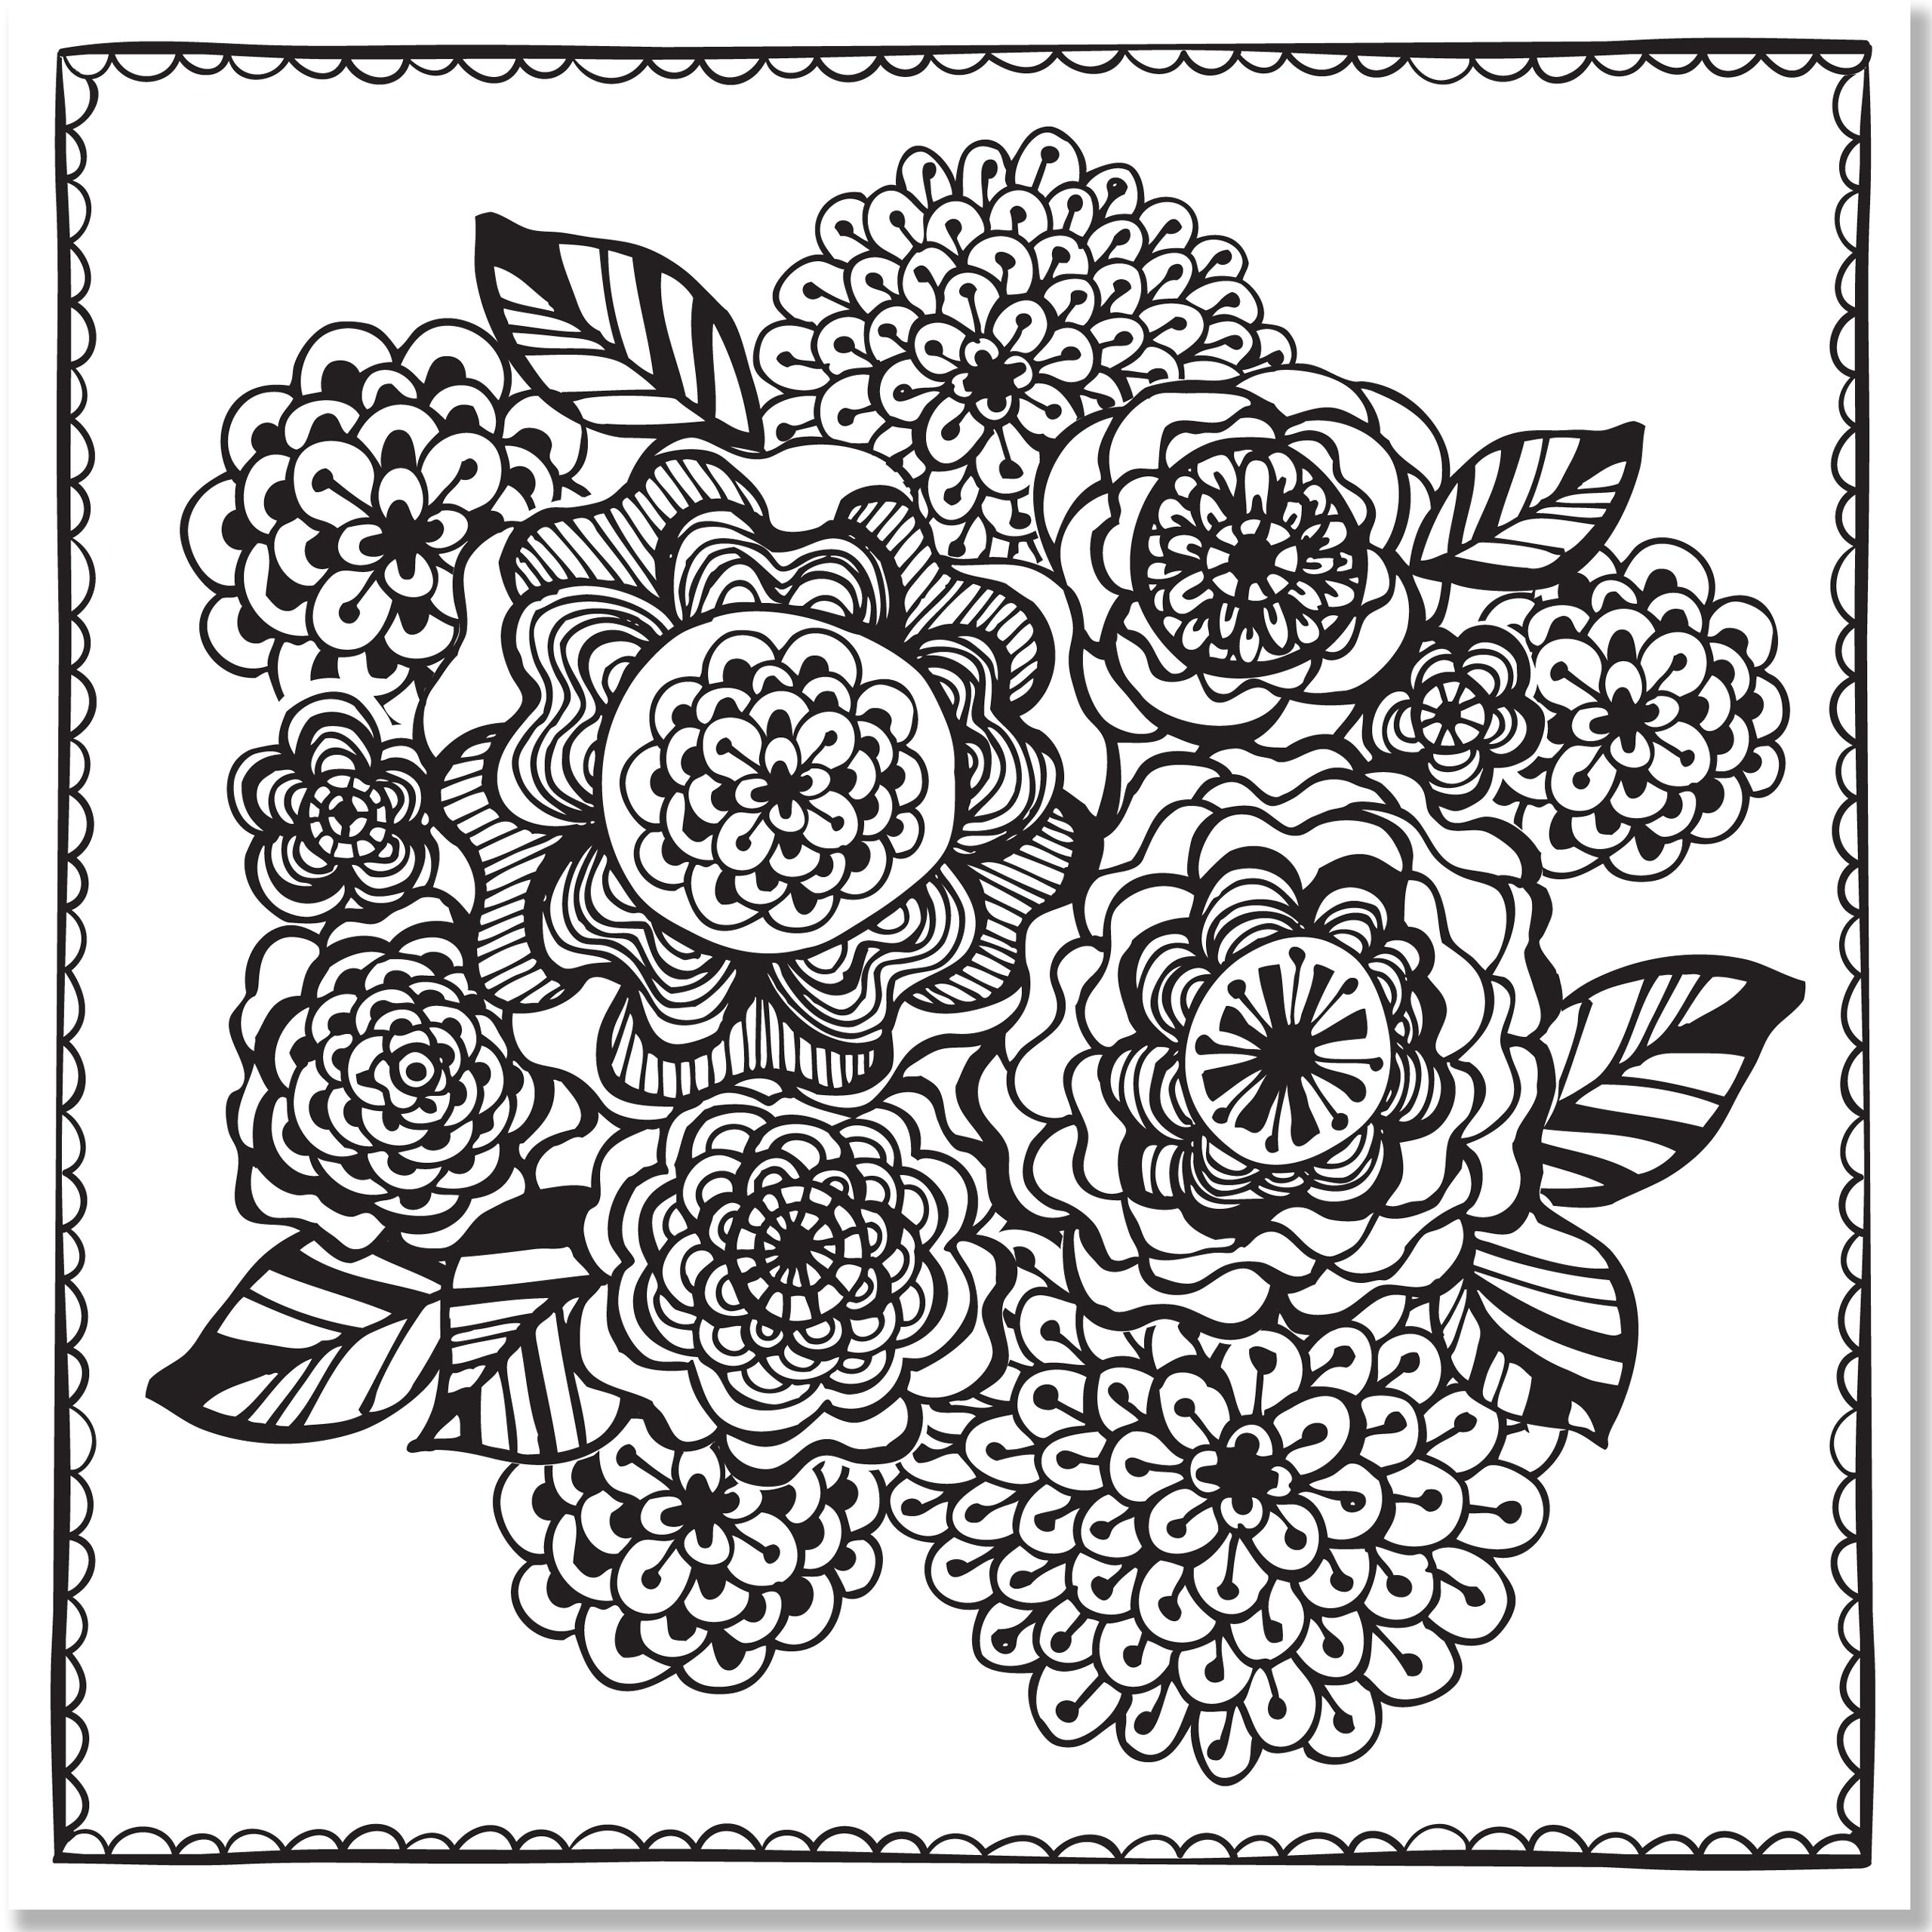 amazon com joyful designs coloring book 31 stress